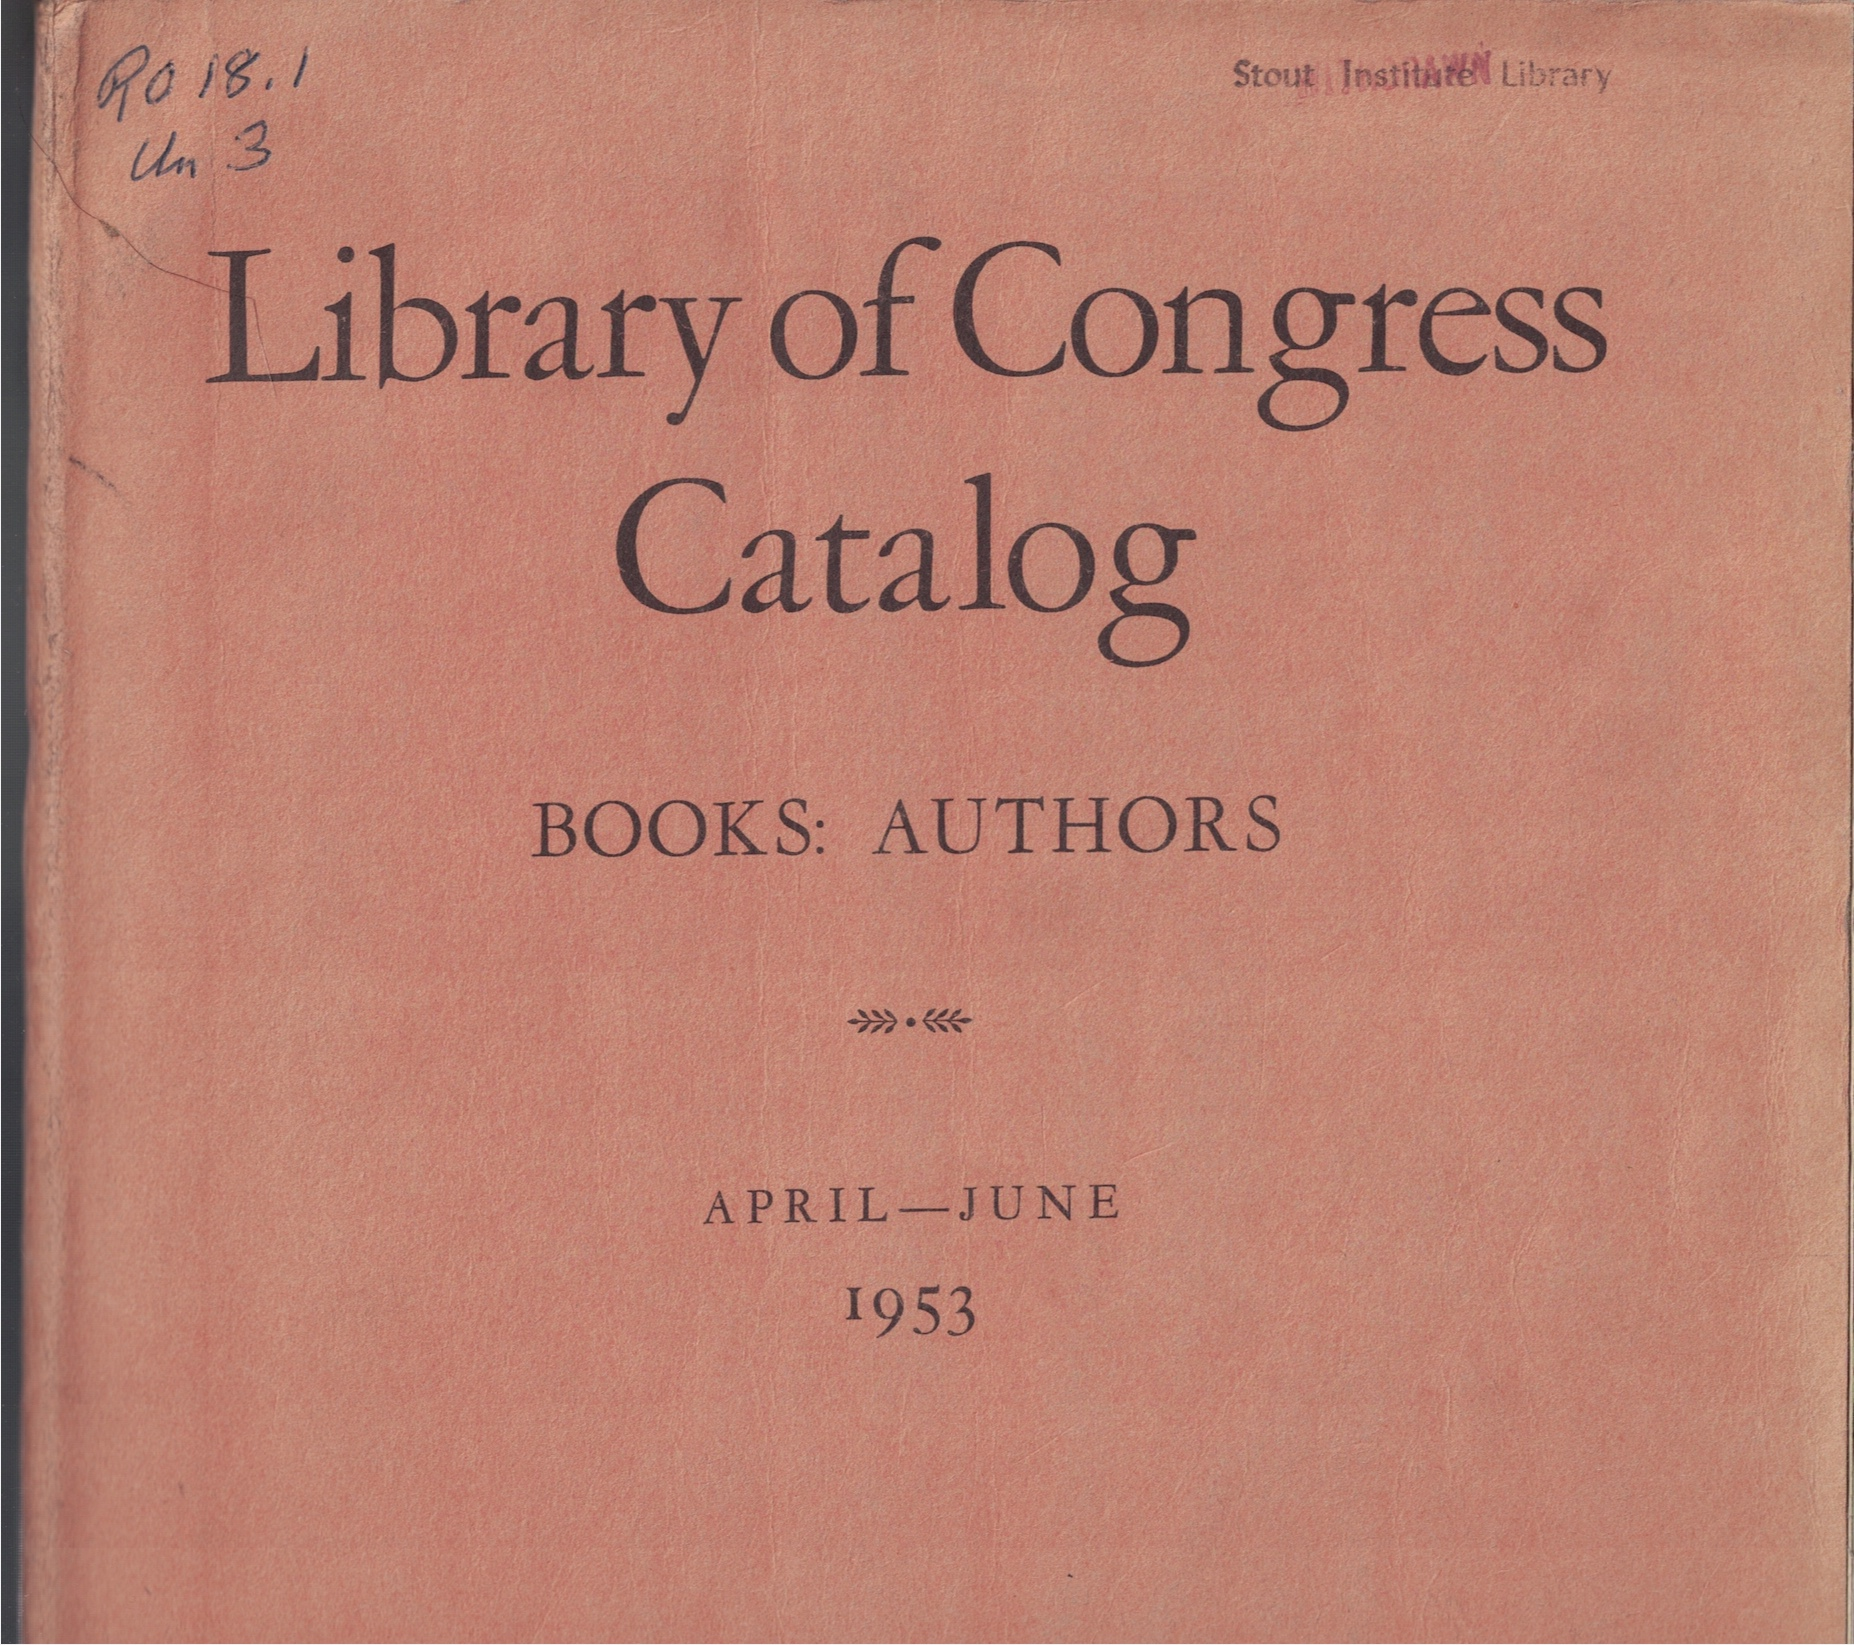 Image for Library of Congress Catalog, A Cumulative List of Works Represented by Library of Congress Printed Cards, April - June 1953; Books: Authors [A-Z]